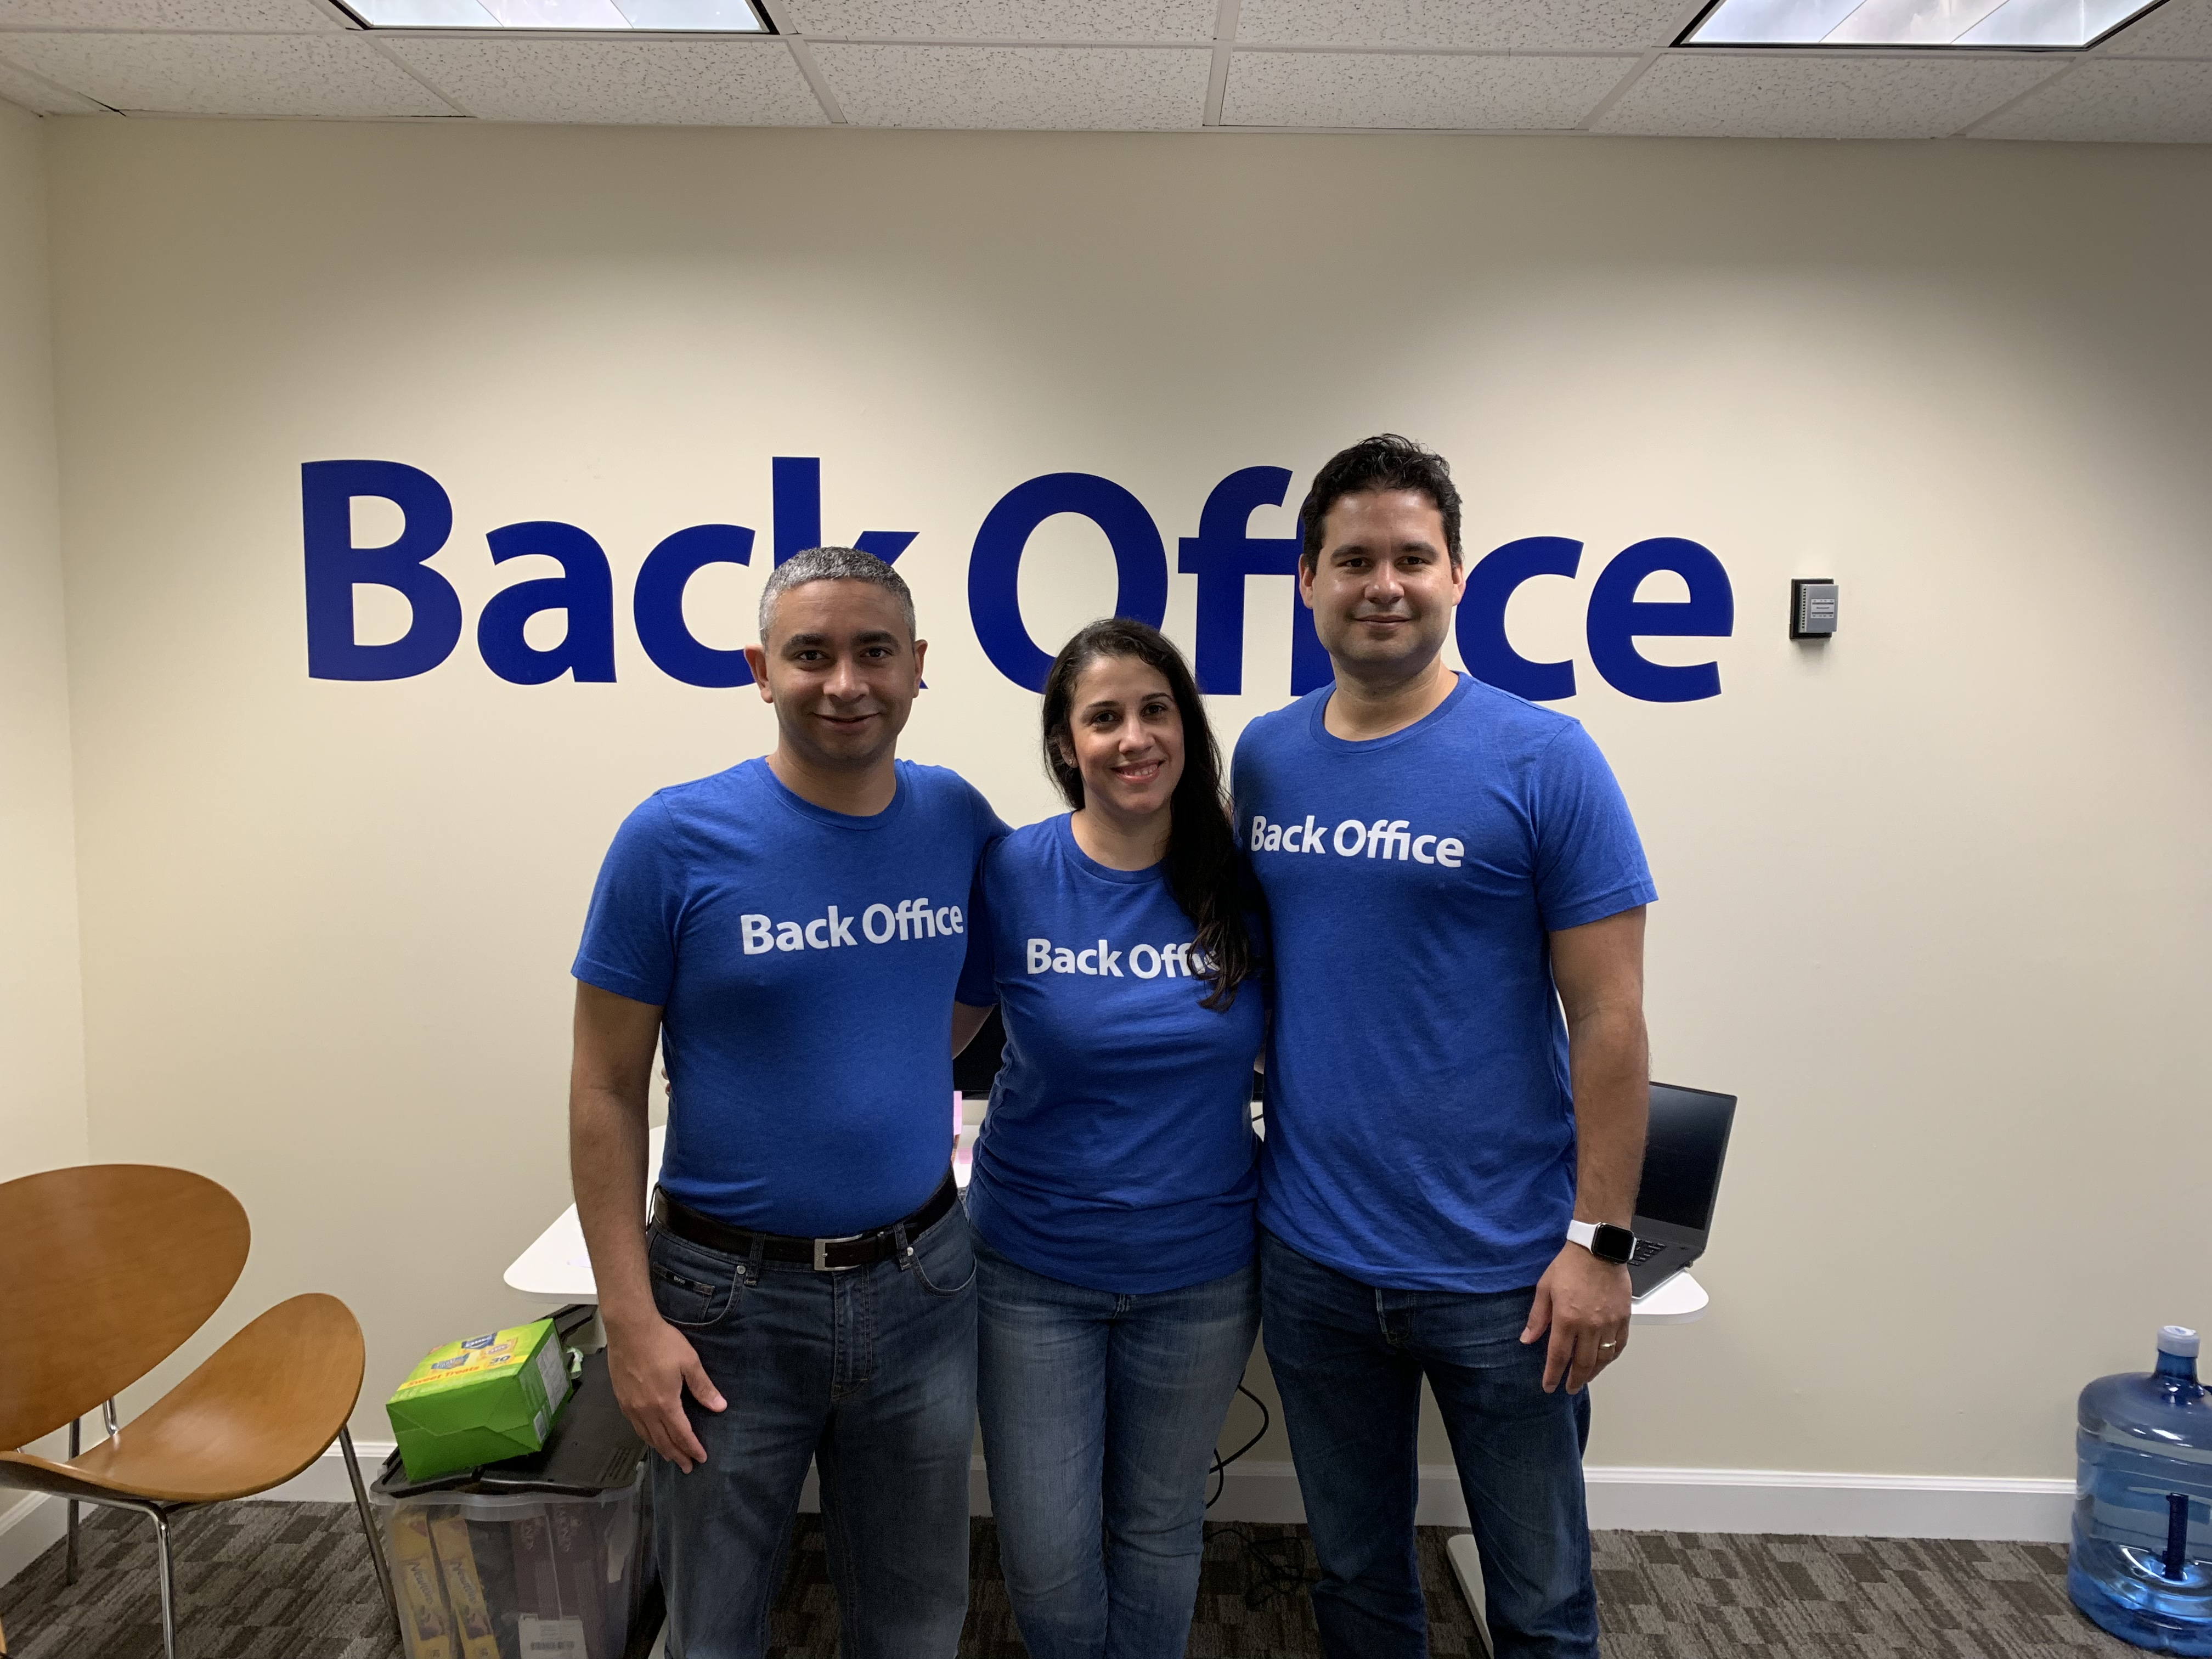 Active Capital Leads $1.8M Seed Round for Startup Back Office